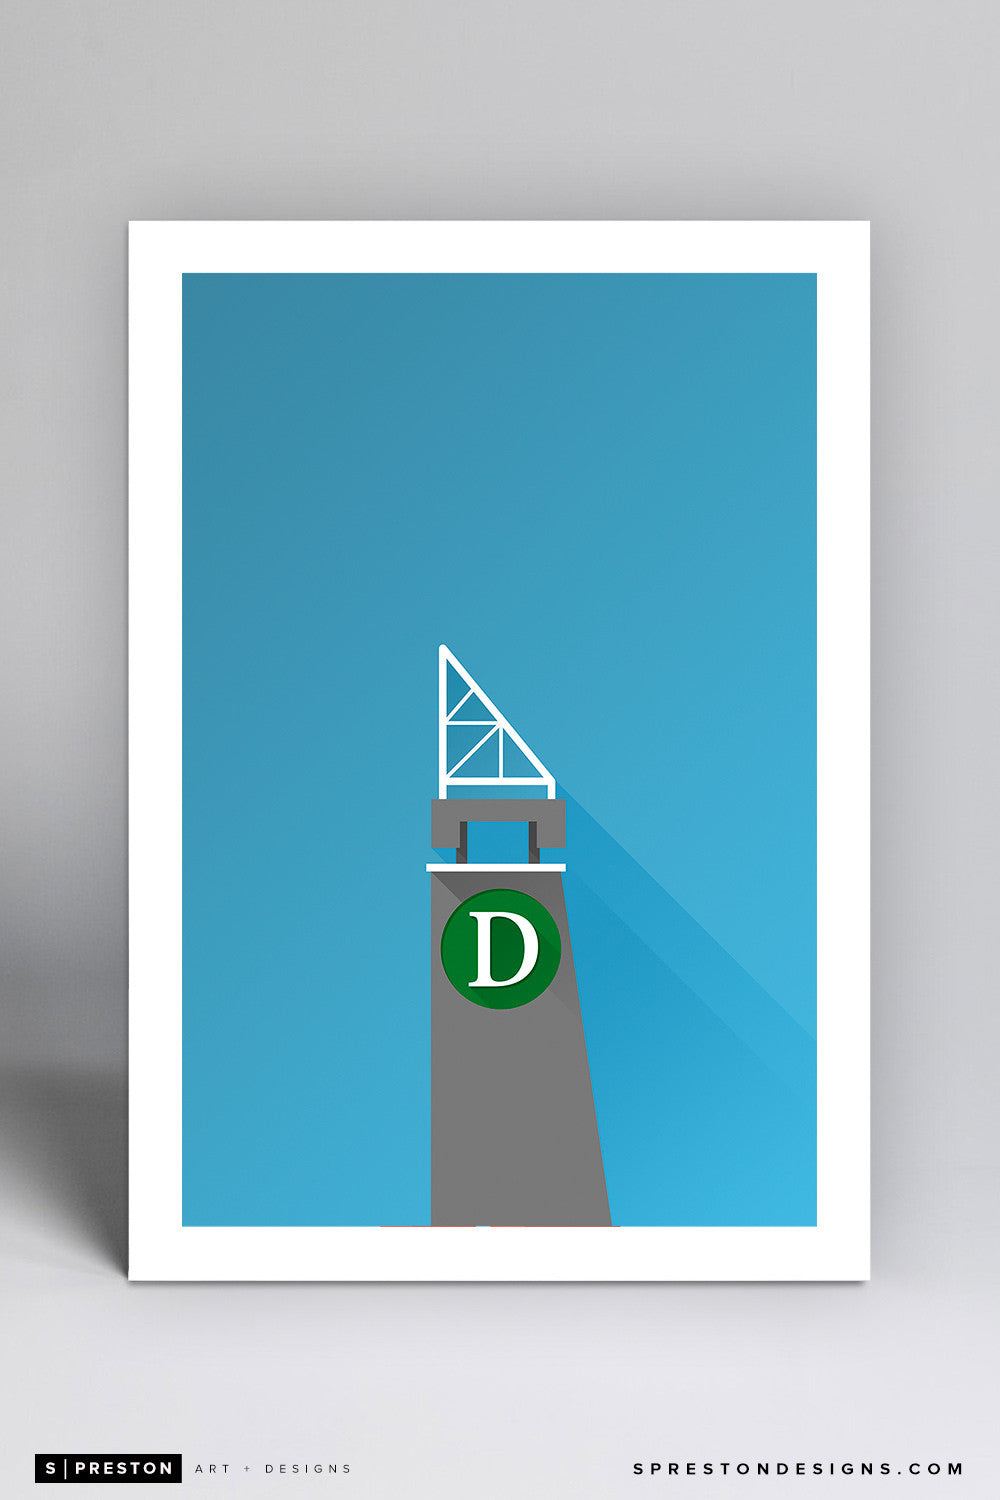 Minimalist Three River Stadium Art Print - Pittsburgh Pirates - S. Preston Art + Designs